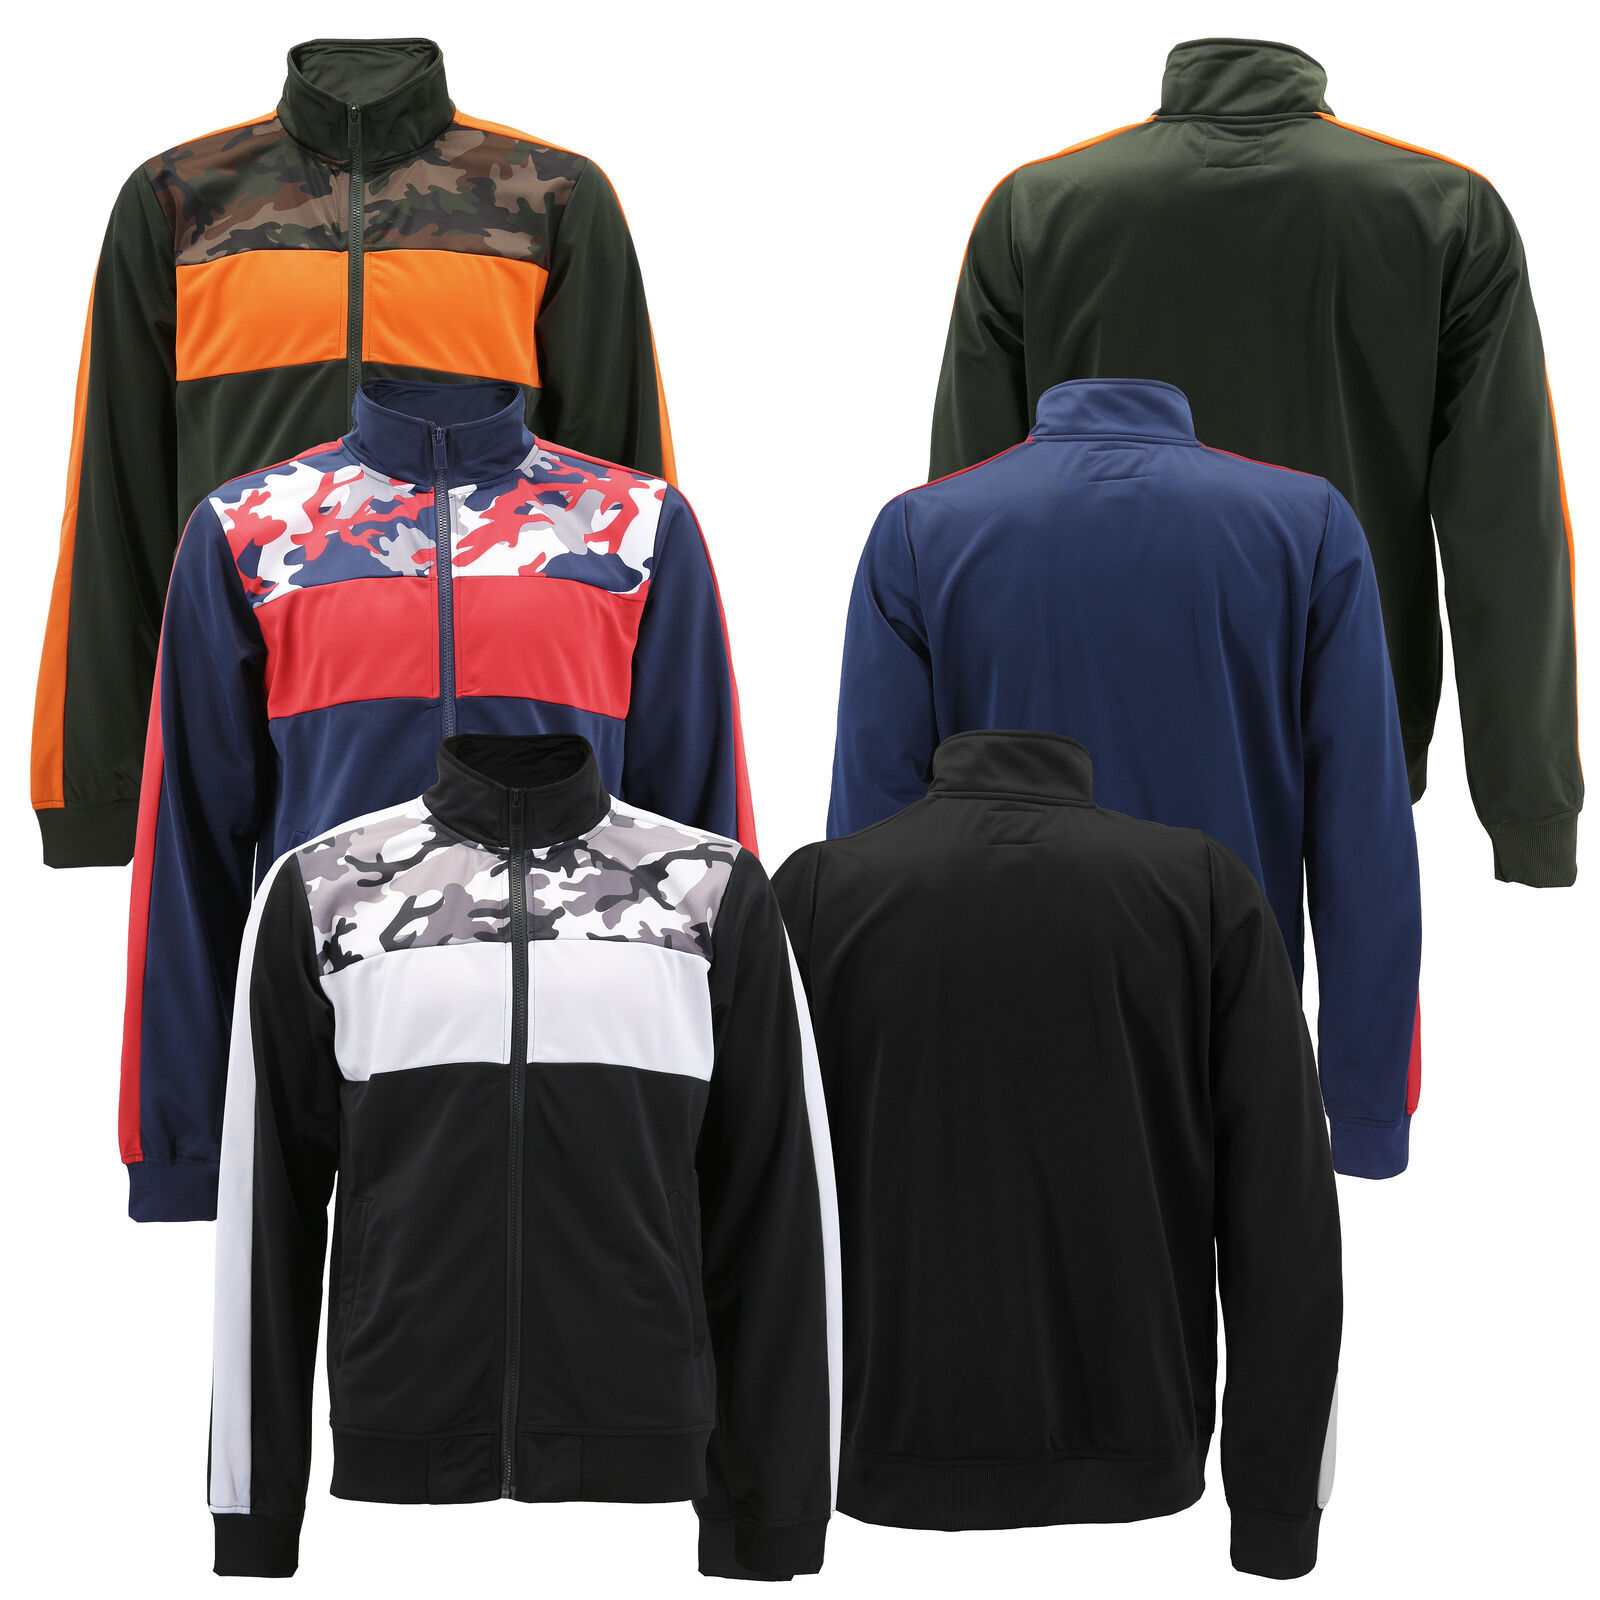 Men's Camo Striped Zip Up Athletic Slim Fit Running Jogging Gym Track Jacket